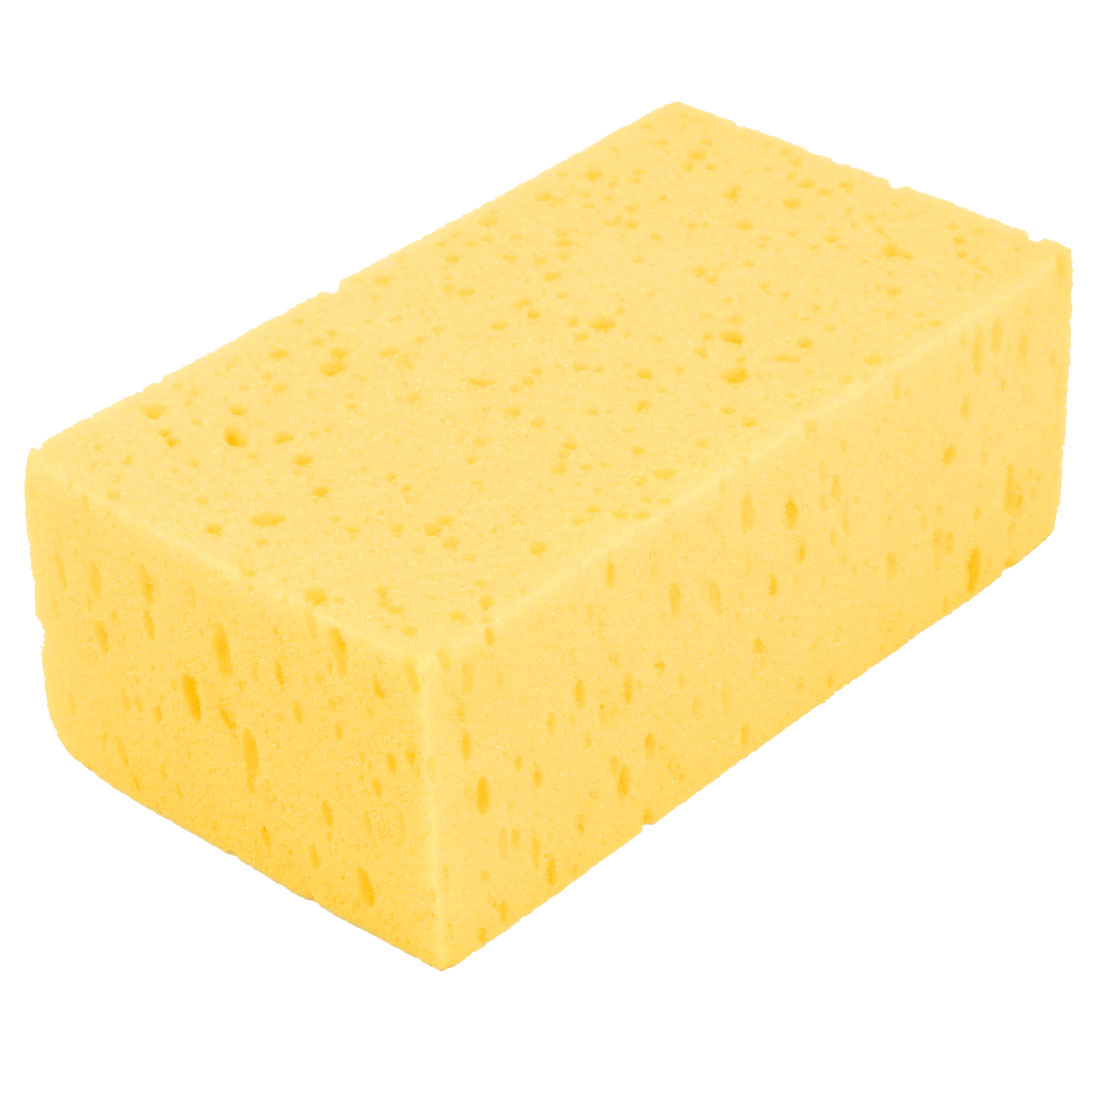 Yellow Rectangular Shape Wash Sponge Glass Windshield Washing Cleaning Pad Block for Car Vehicle